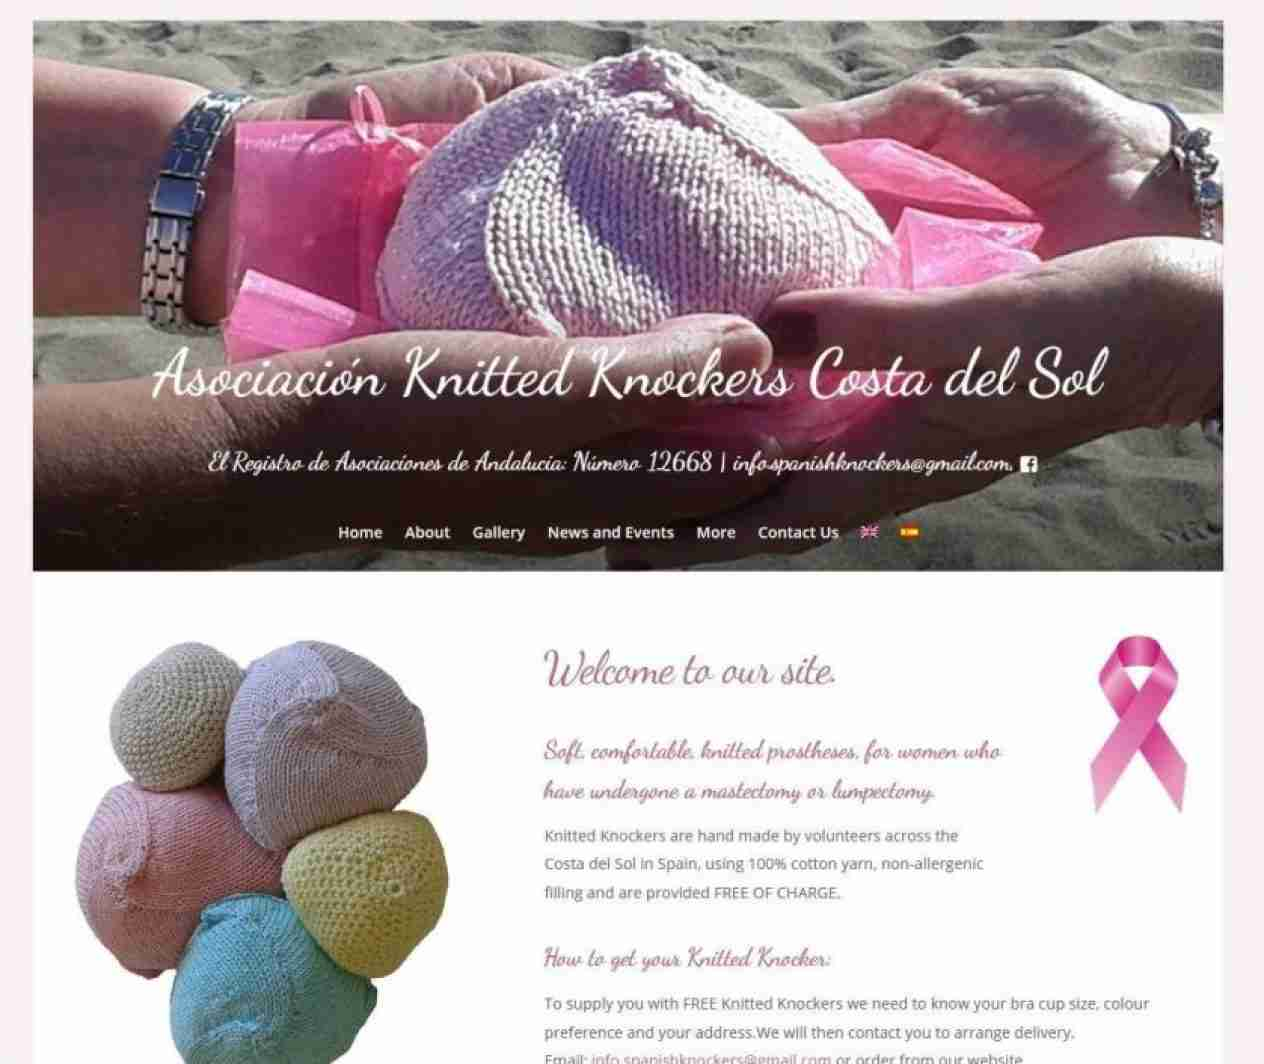 Knitted Knockers Costa del Sol Spain - Screengrab